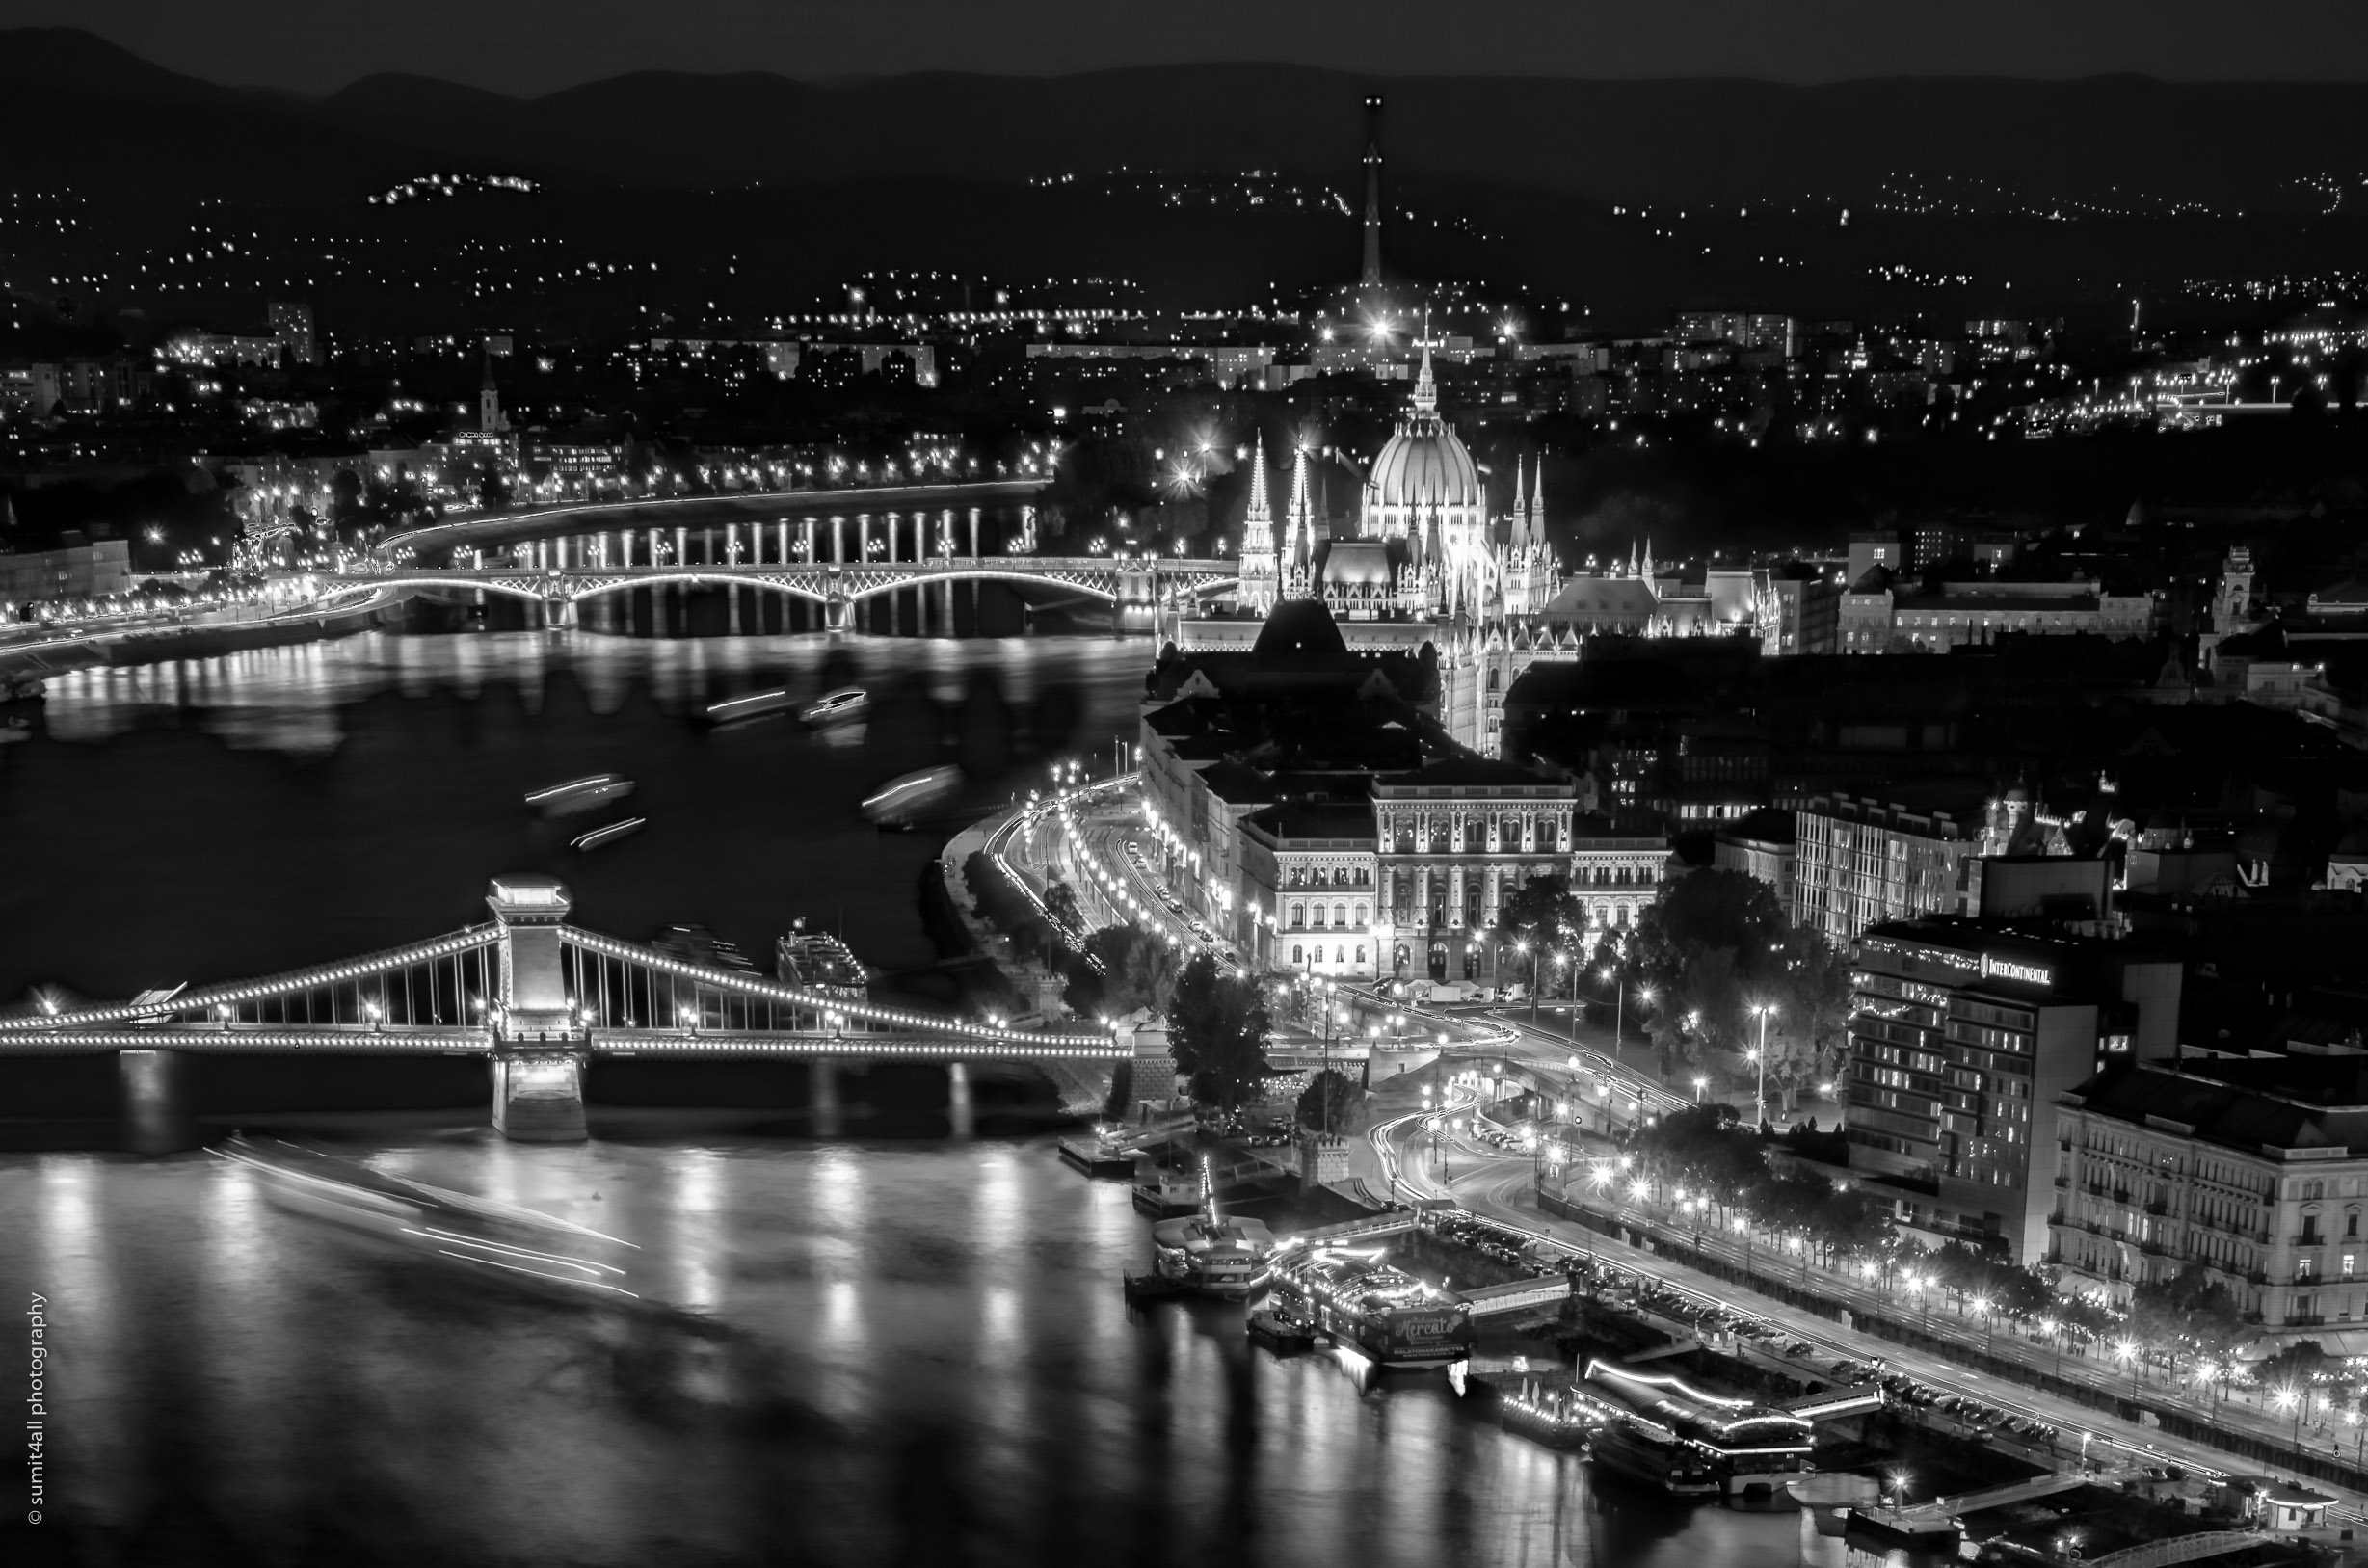 budapest beyond colors in monochrome a photo essay sumit4all beautiful promenade by the chain bridge leading up to the parliament building